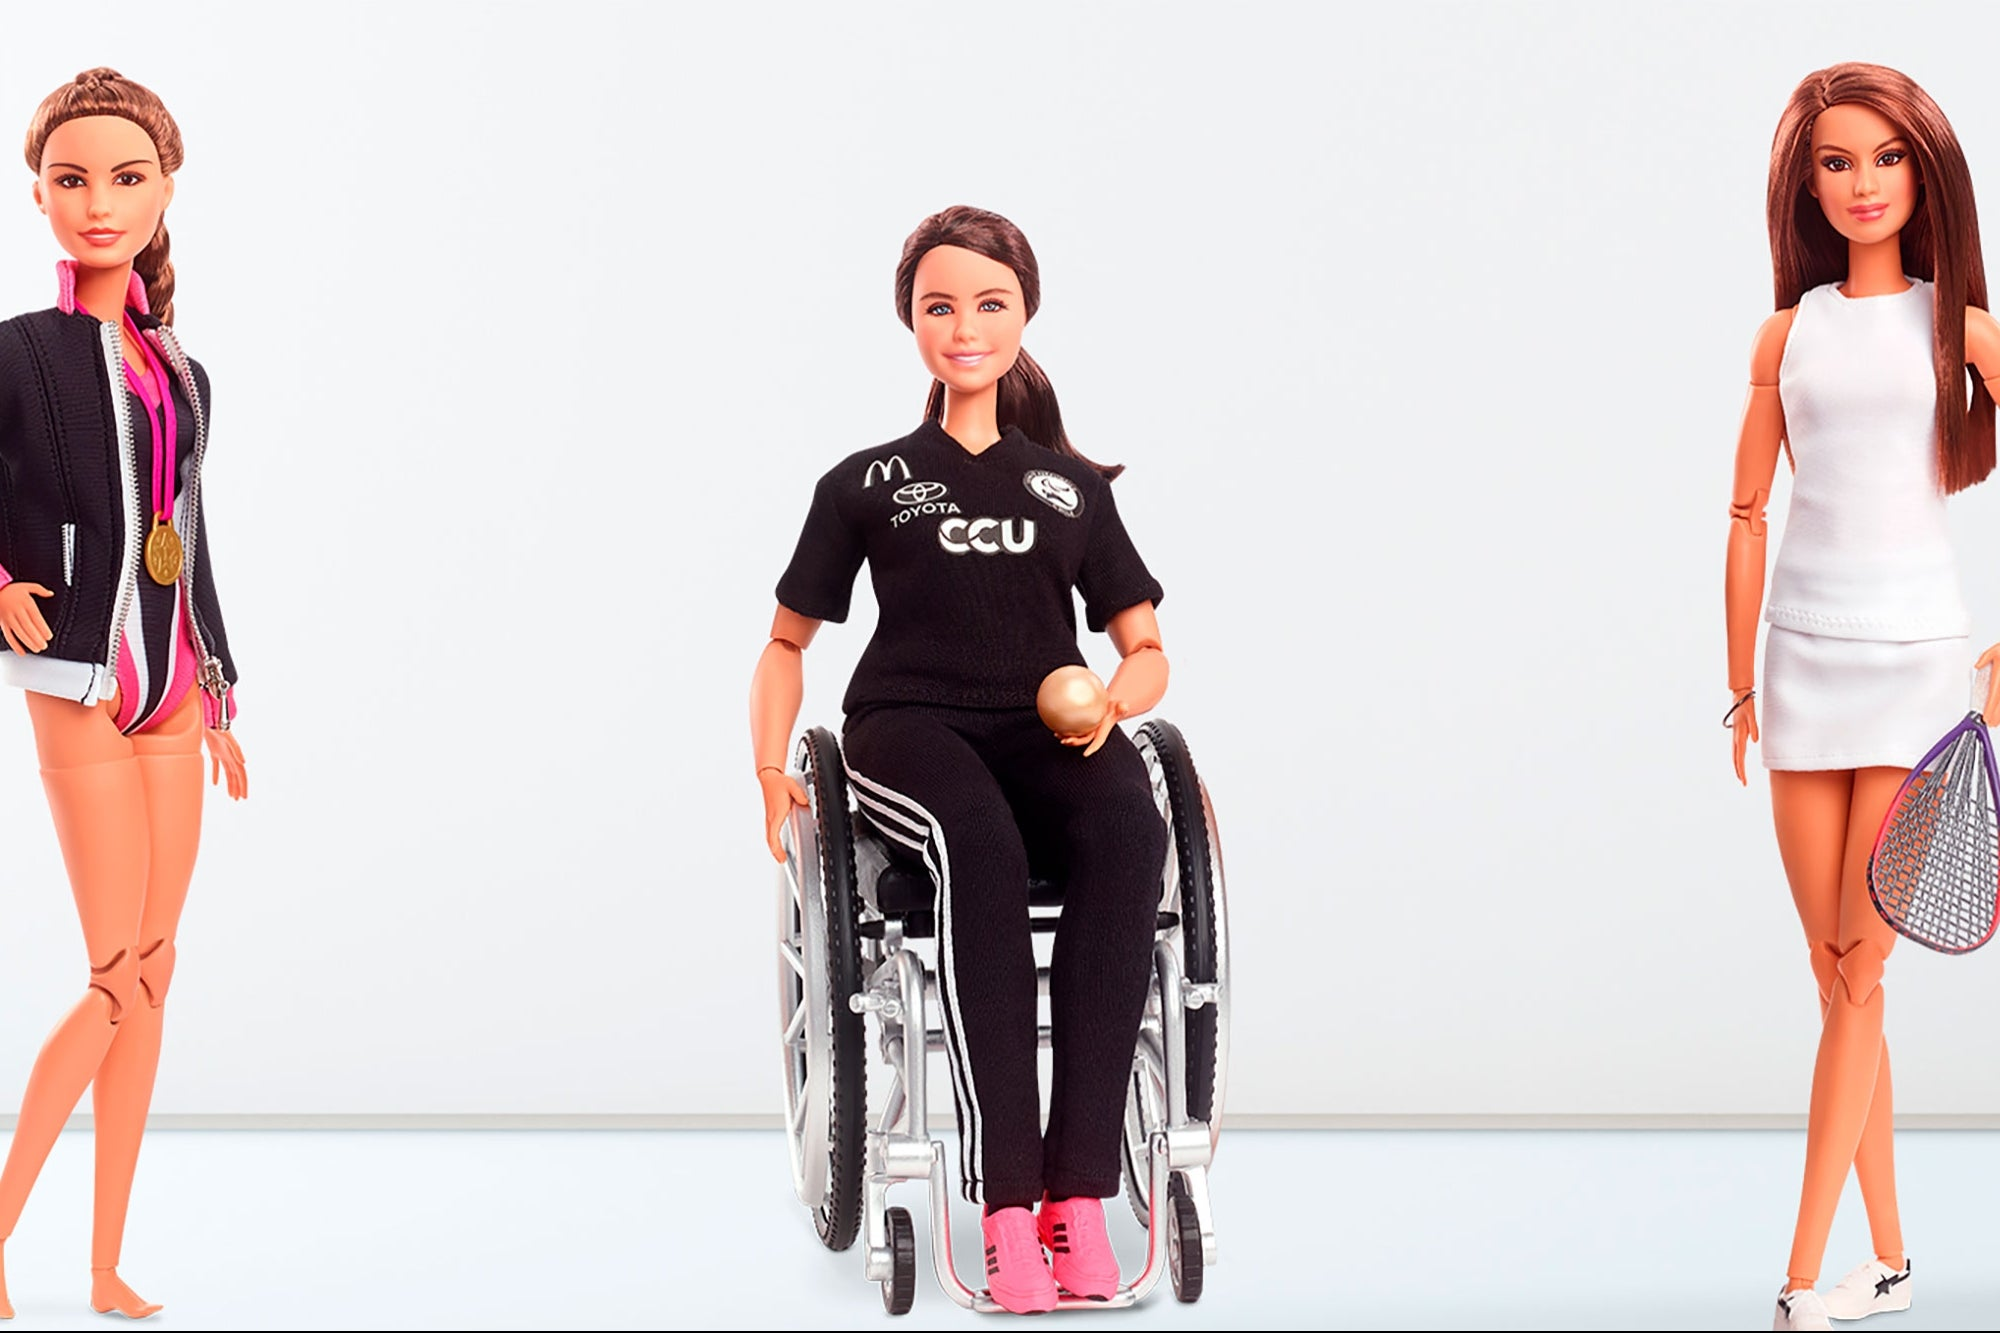 Barbie launches three dolls in tribute to Latin American athletes